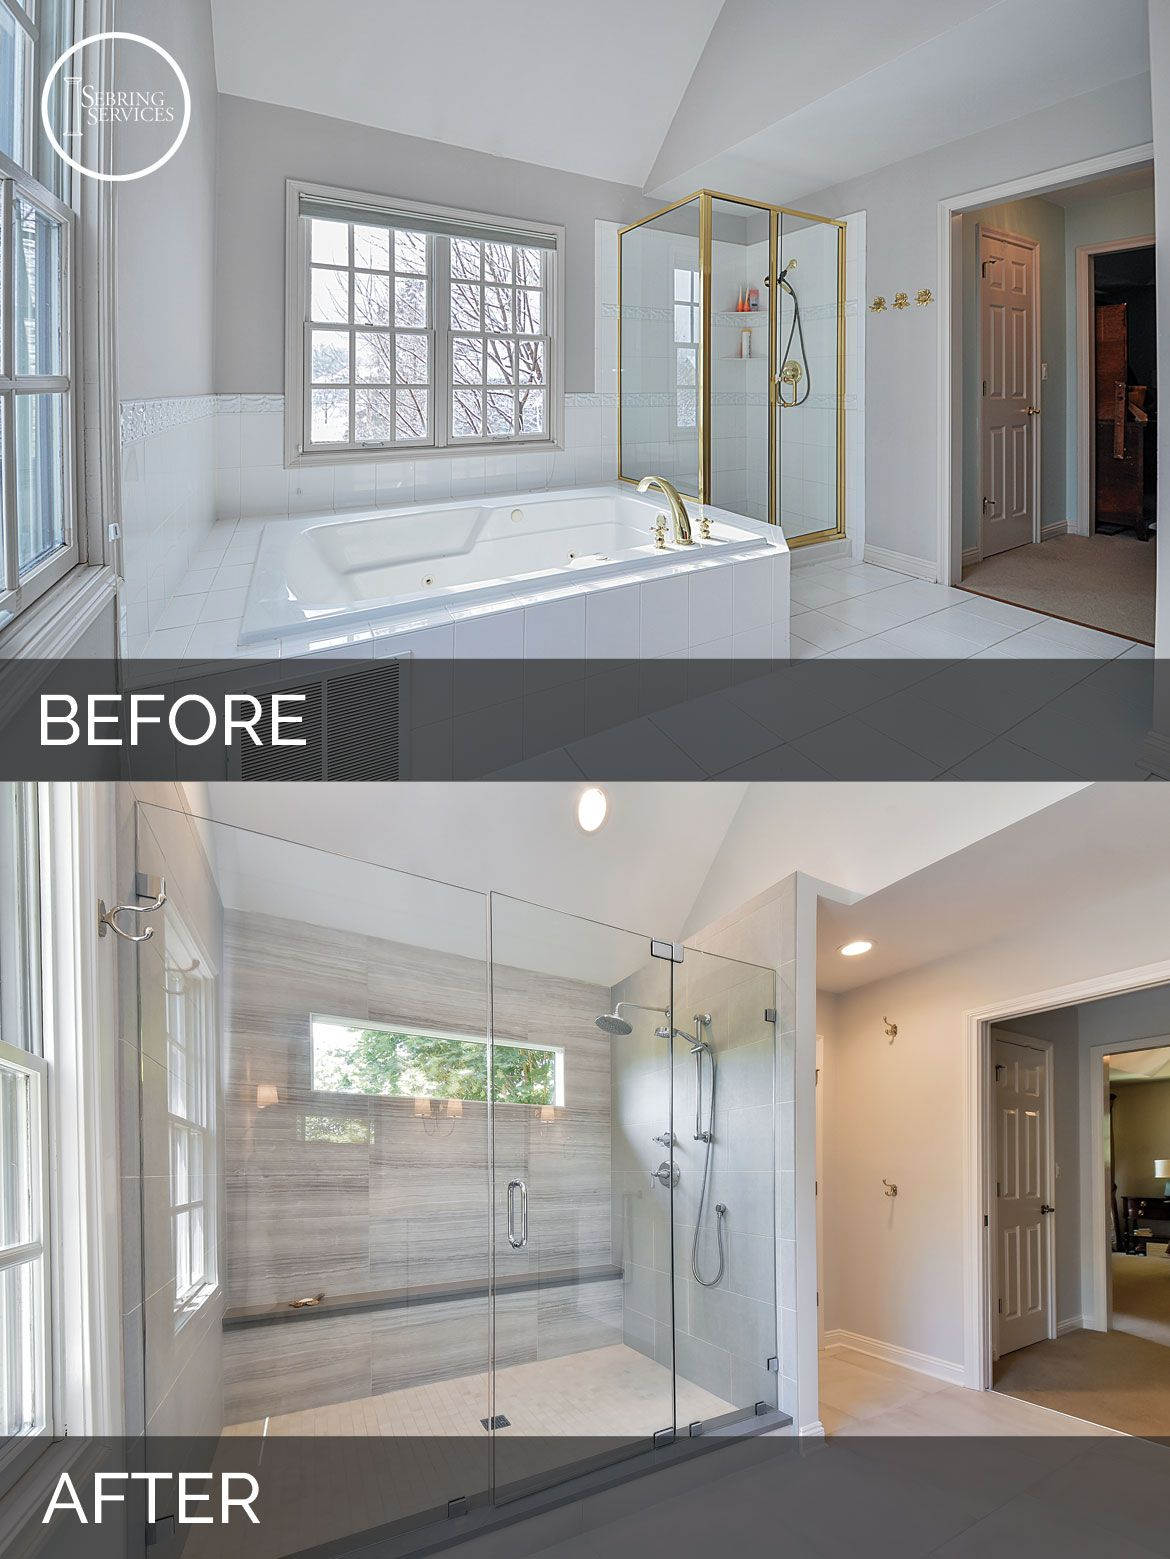 Carl susan 39 s master bath before after pictures master bathrooms bath and house Cheap bathroom remodel before and after